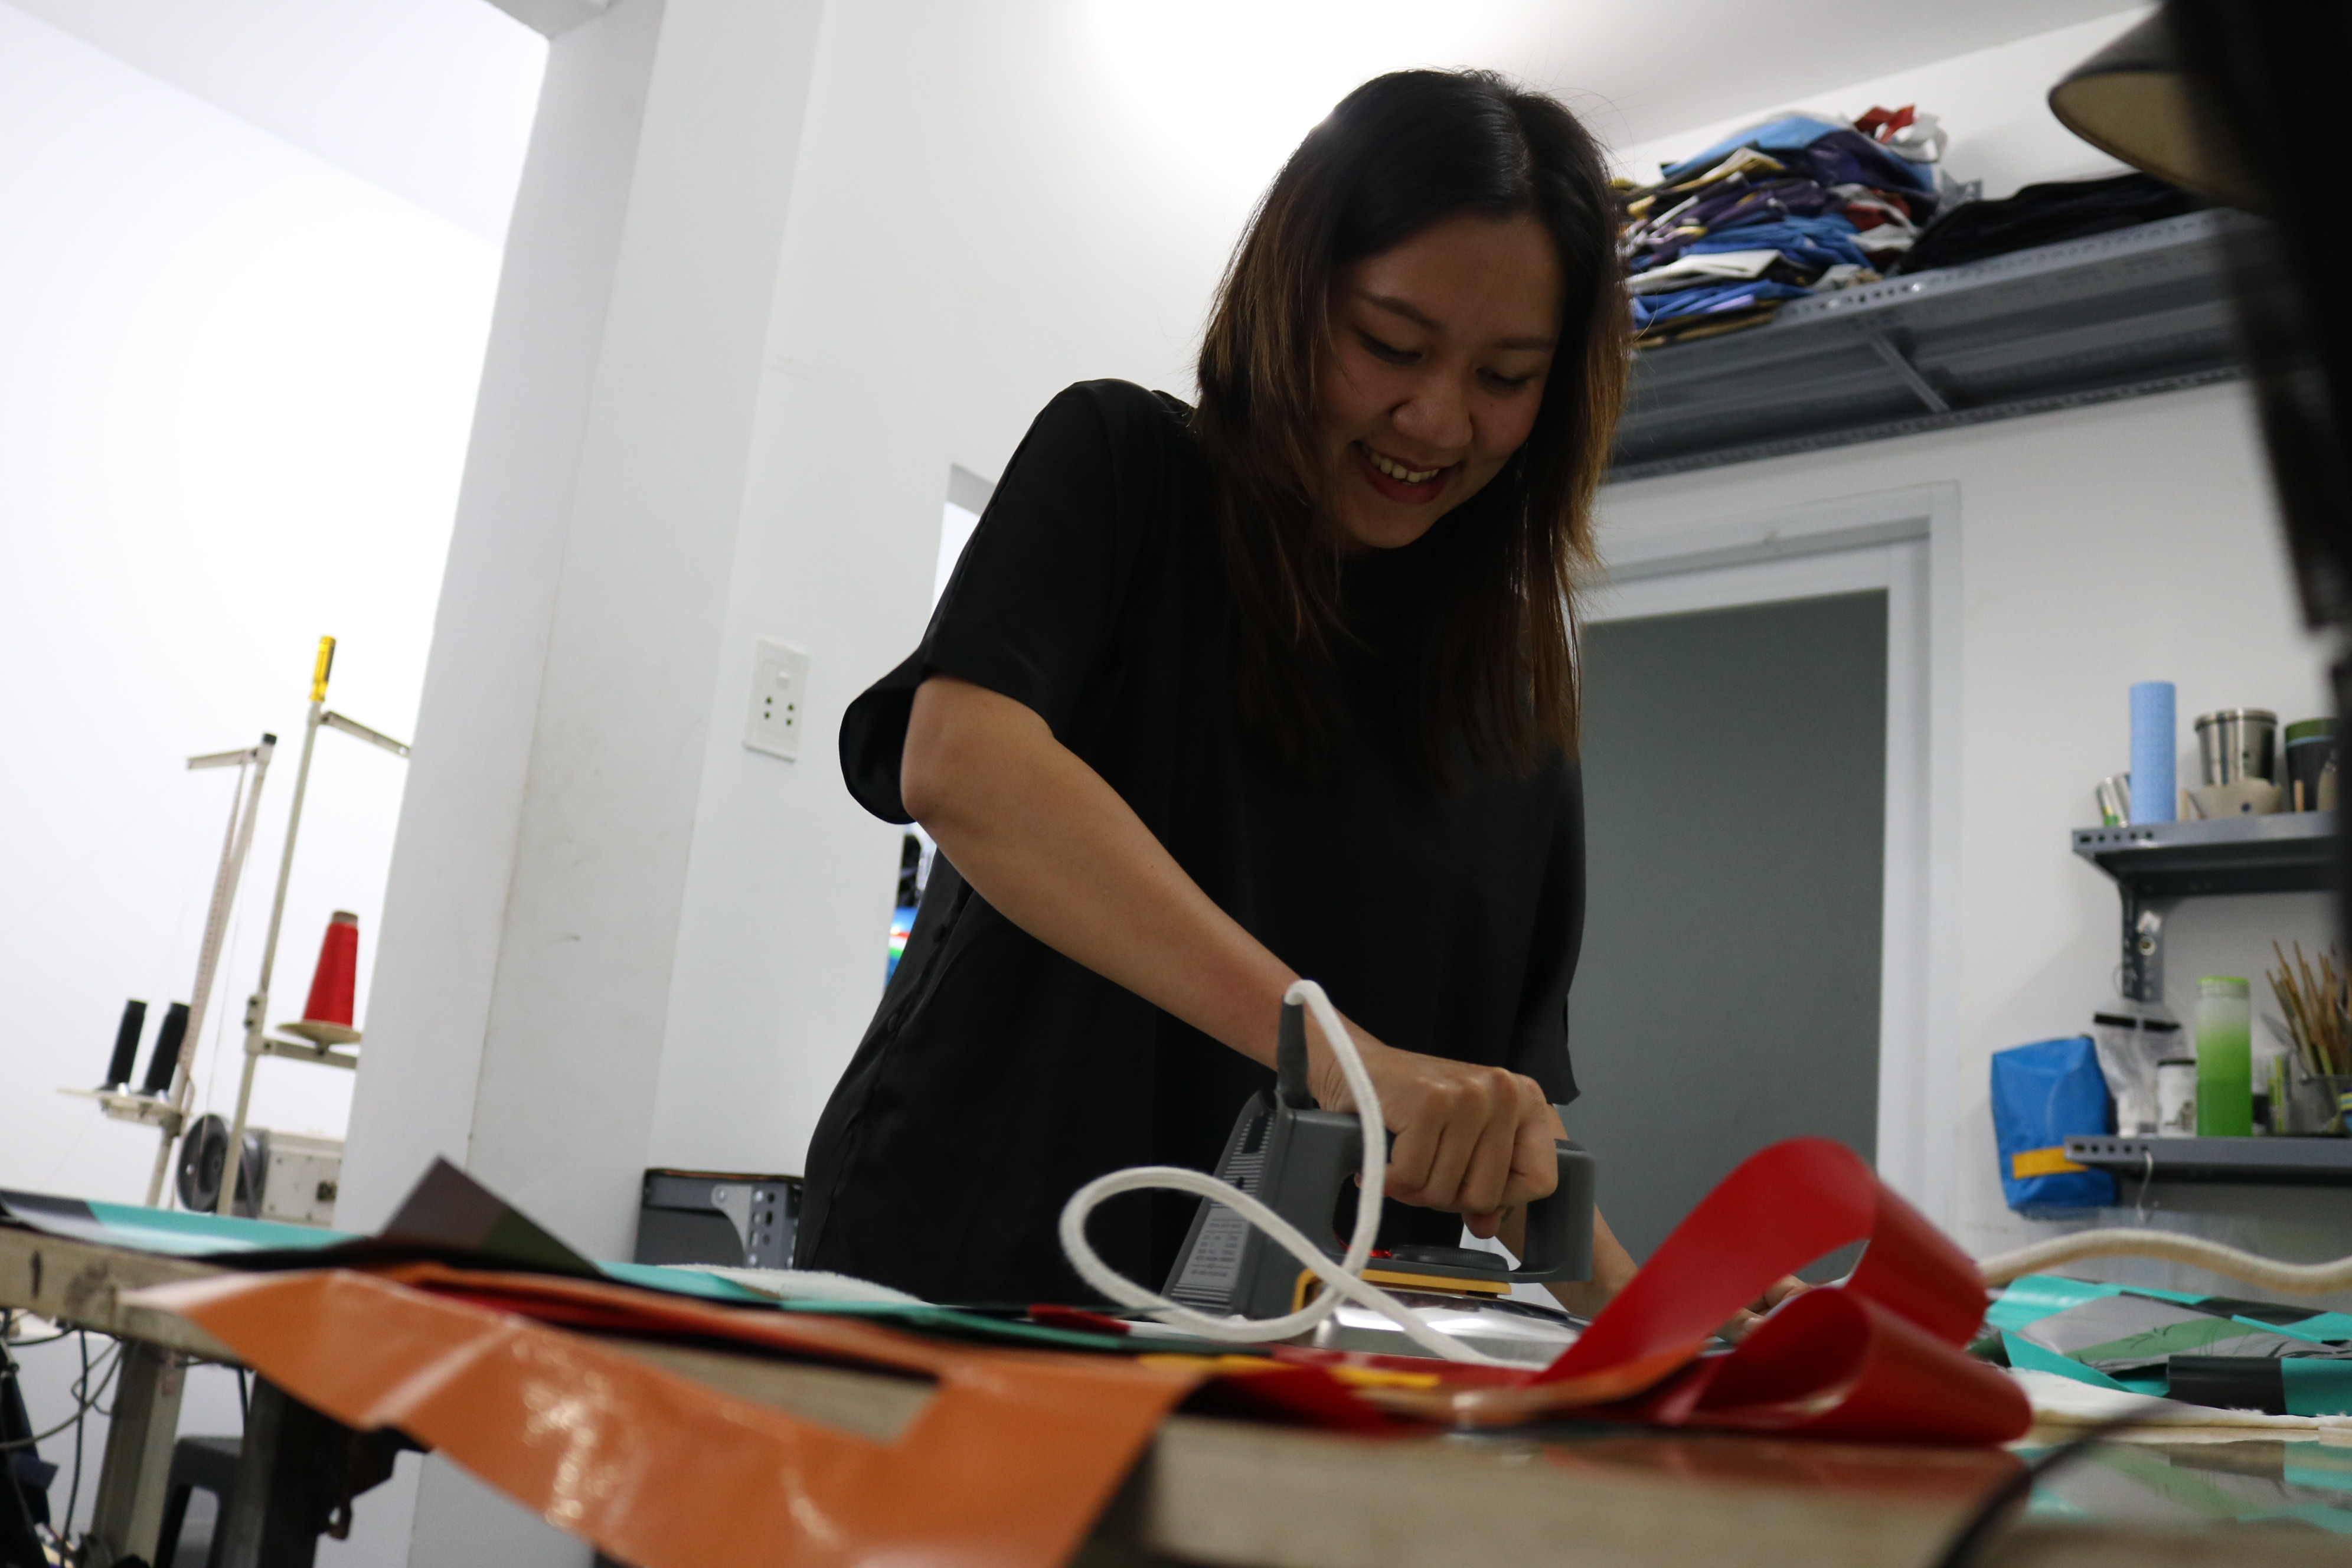 Kieu Anh, co-founder of Dong Dong Sai Gon, irons tarps before moving them to the next step for sewing at the brand's workshop in Ho Chi Minh City, August 2020. Photo: Hoang An / Tuoi Tre